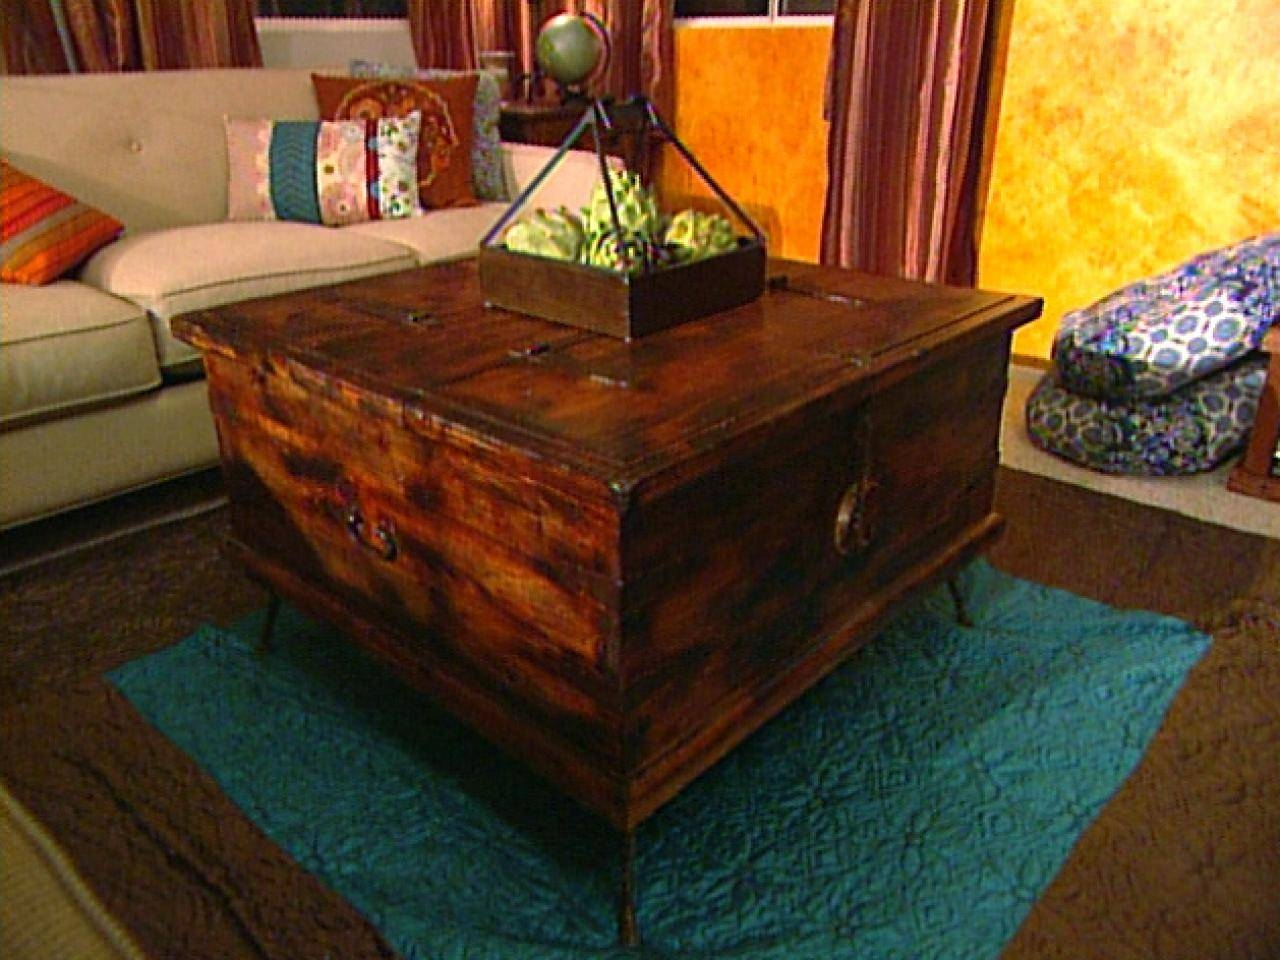 Giving Furniture A Chic Rustic Look | Hgtv intended for Rustic Looking Coffee Tables (Image 15 of 15)